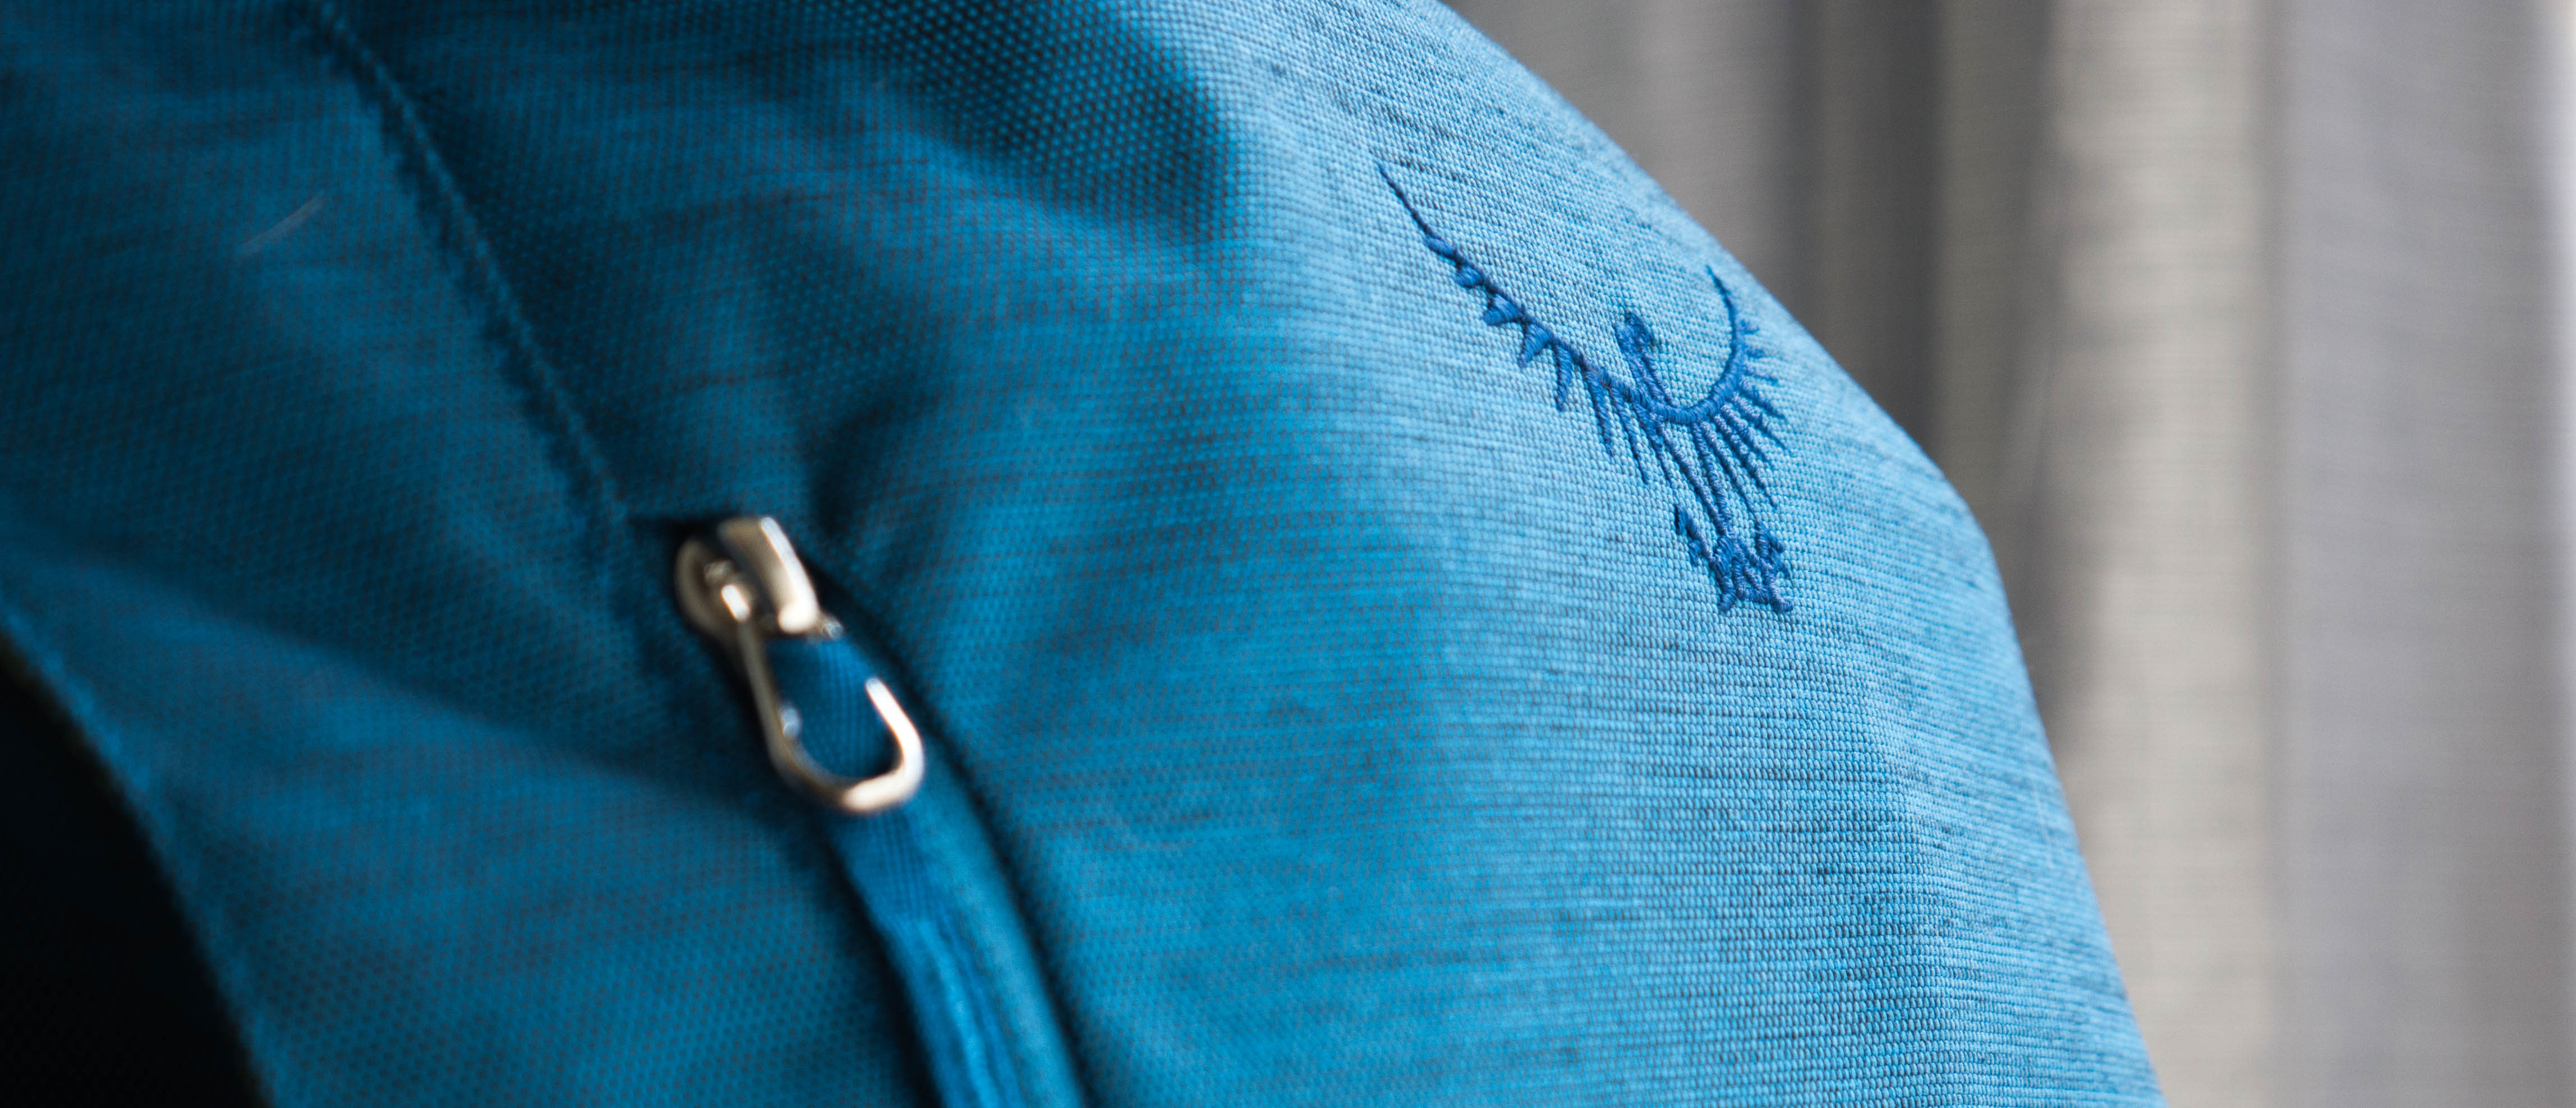 Osprey Pixel Review - Tech Backpack for an Active Lifestyle